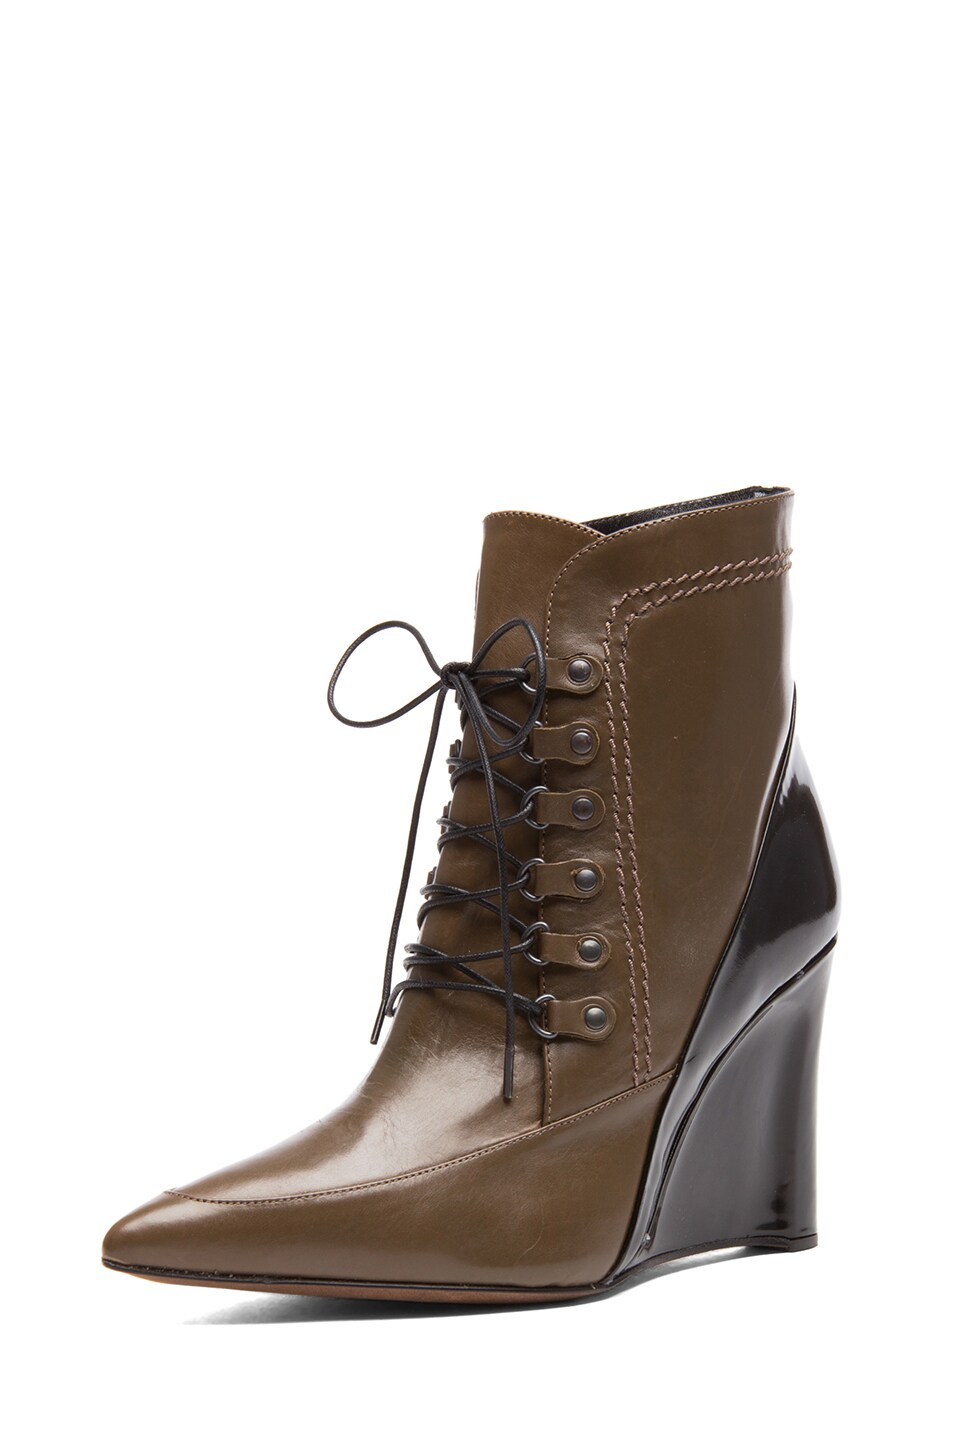 Image 2 of Derek Lam Maxine Calfskin Leather Pointy Toe Ankle Boots in Doe & Black